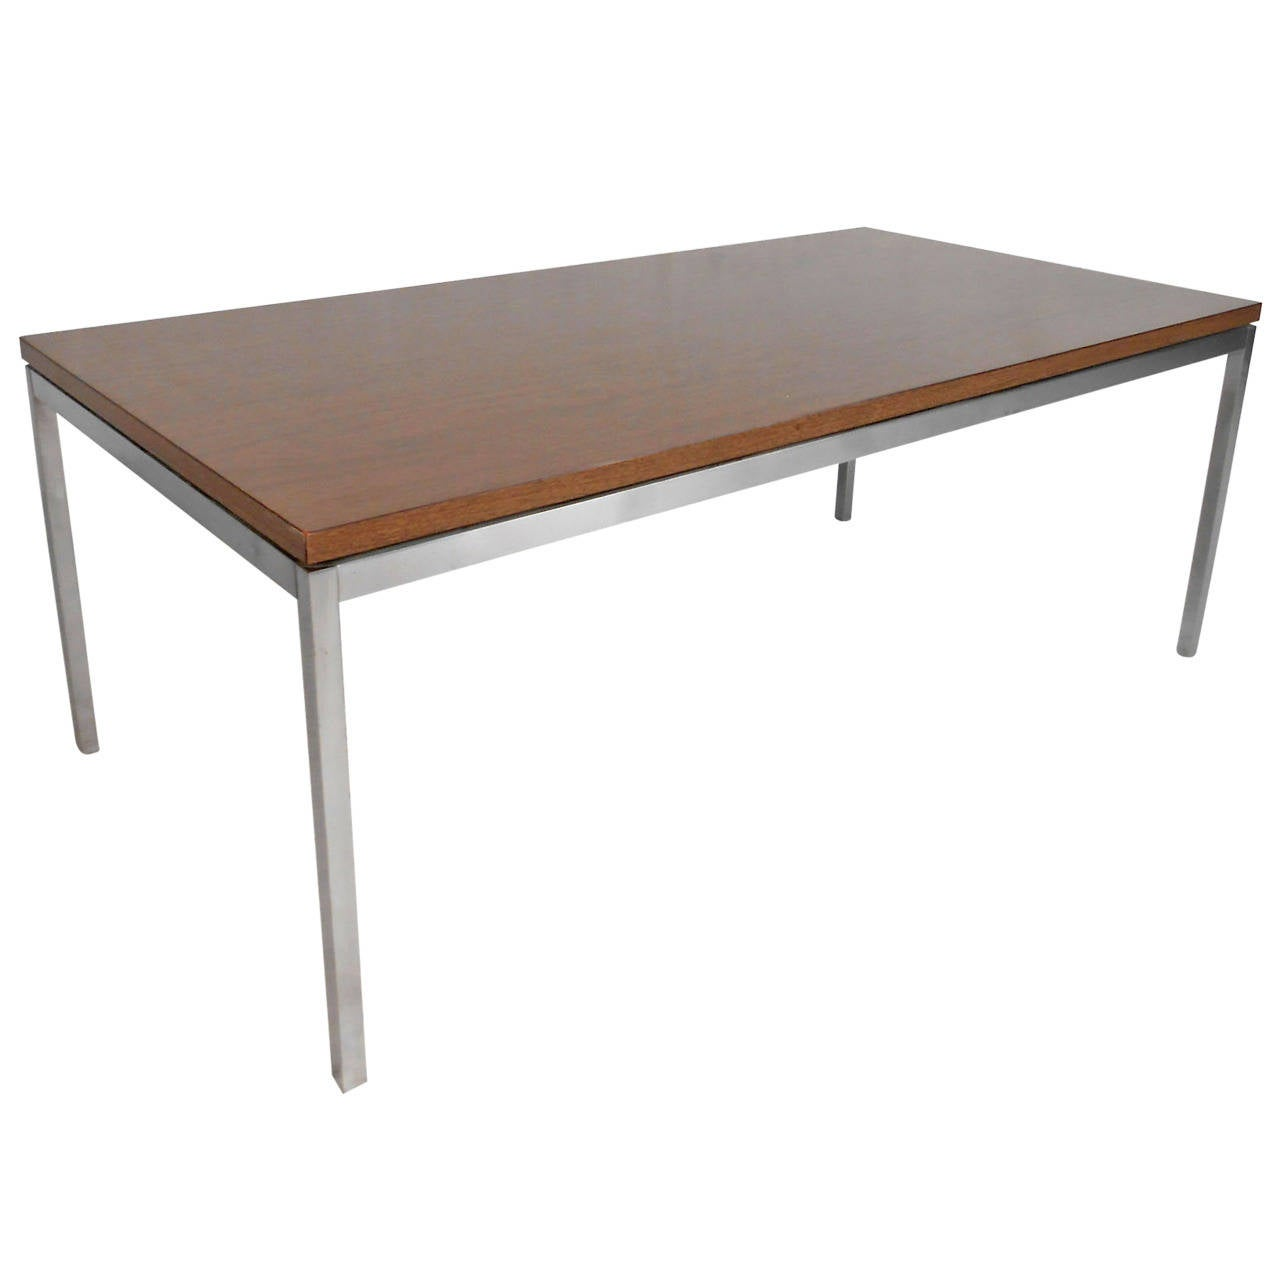 Mid century modern florence knoll coffee table for sale at 1stdibs Florence knoll coffee table